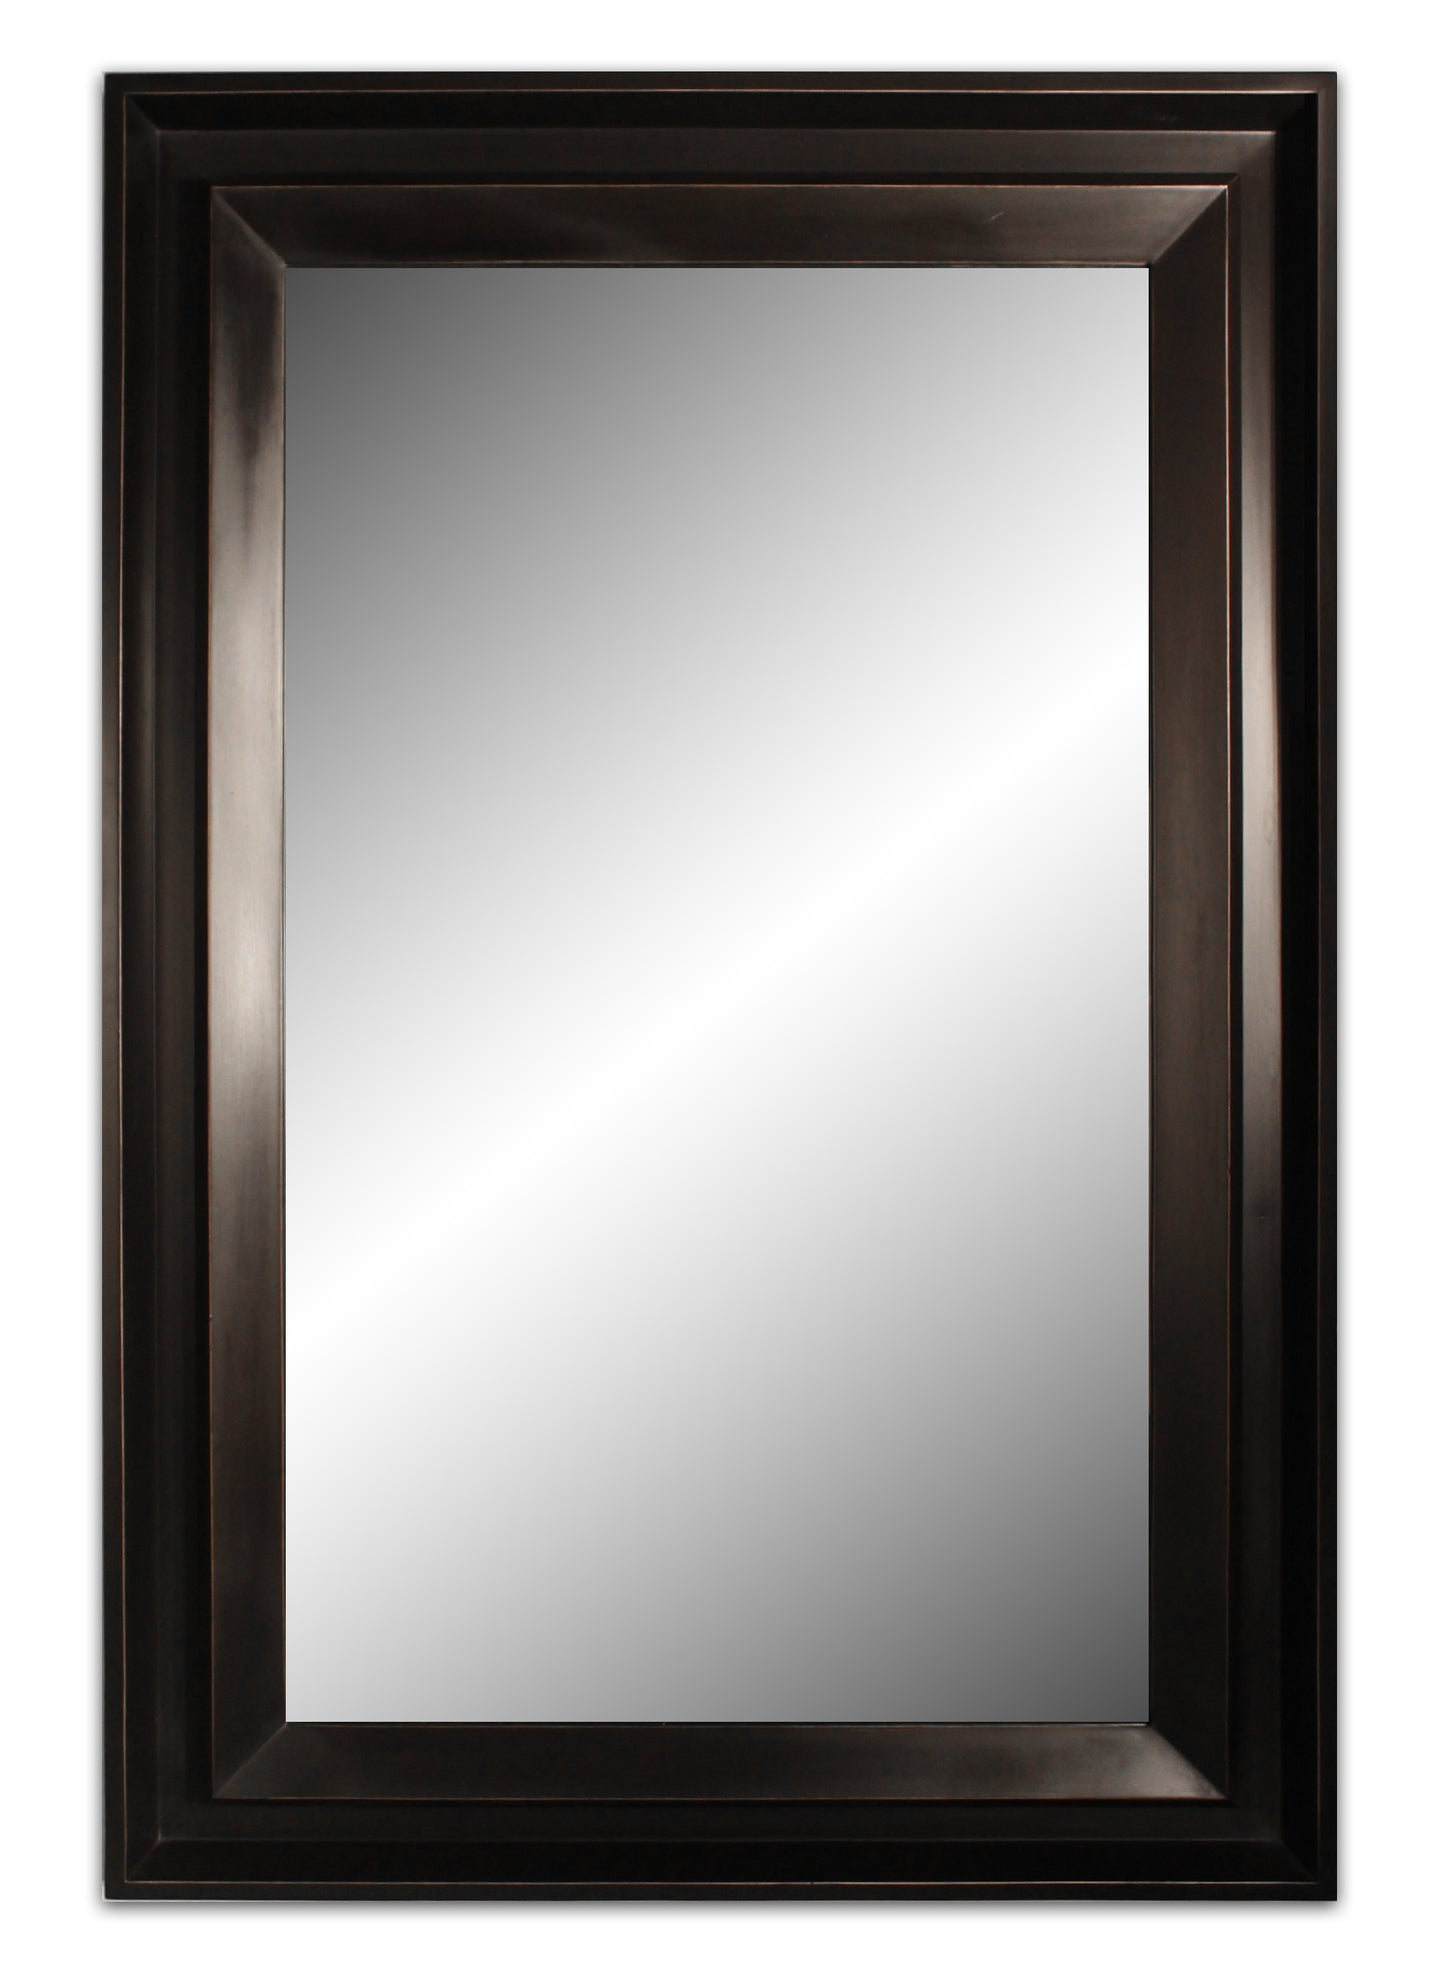 Modernist Angle Mirror (5 1/2